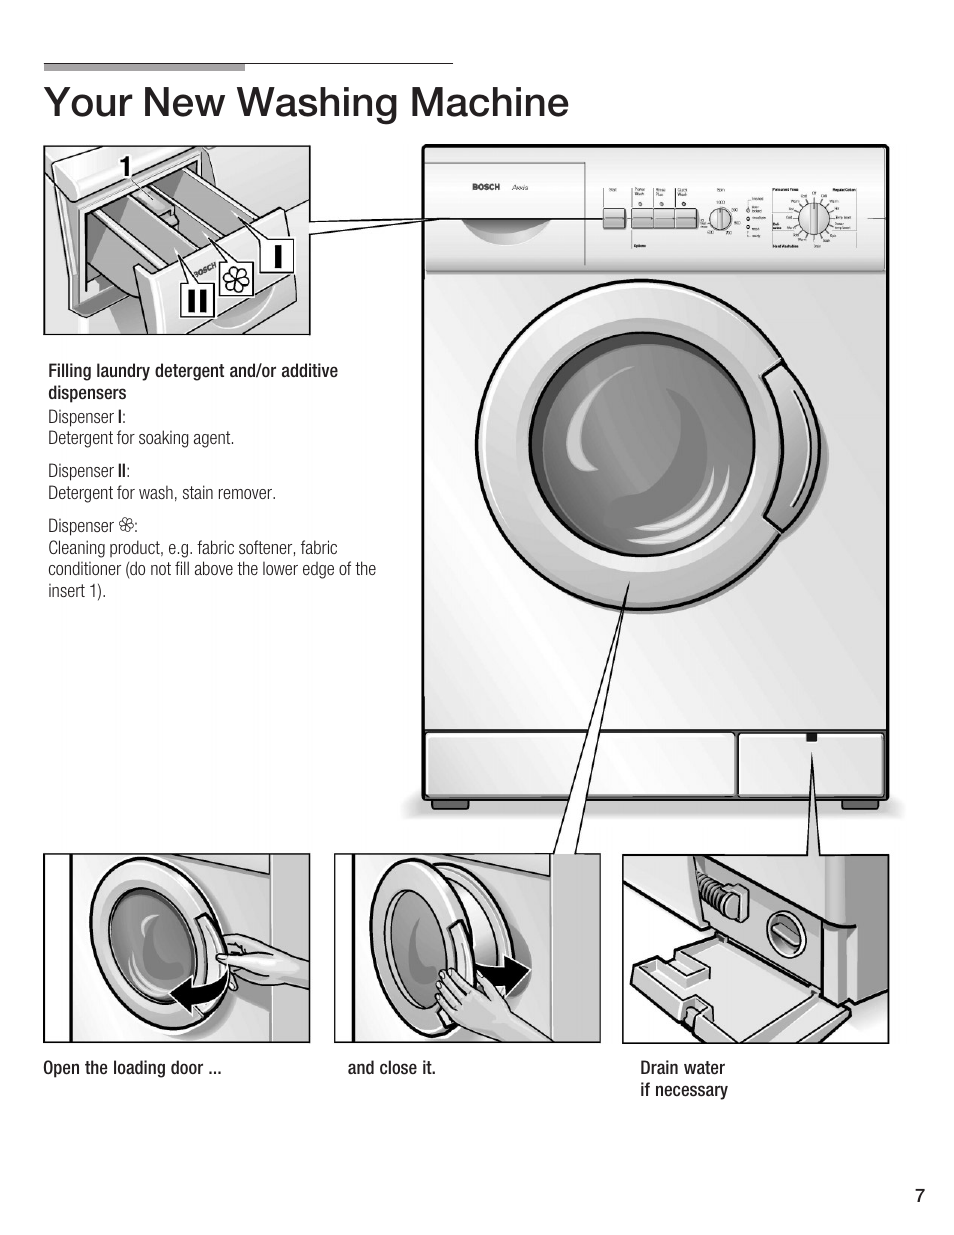 your new washing machine bosch axxus wfl 2050 user manual page 7 rh manualsdir com bosch axxis washer instruction manual bosch car washer user manual